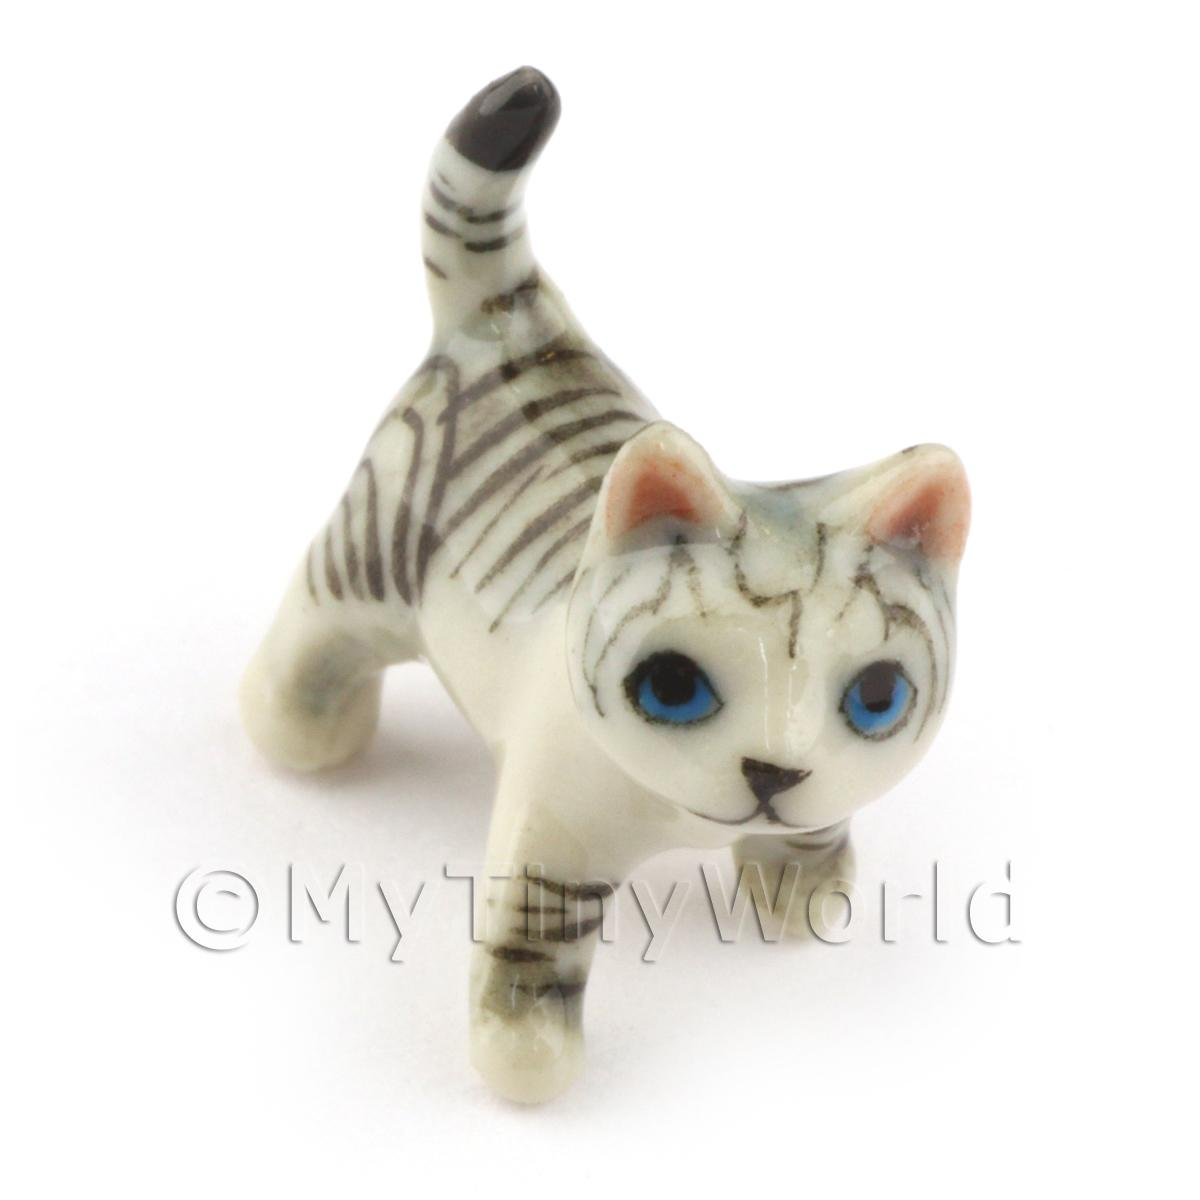 Dolls House Miniature Ceramic Grey Tabby Cat In Standing Position